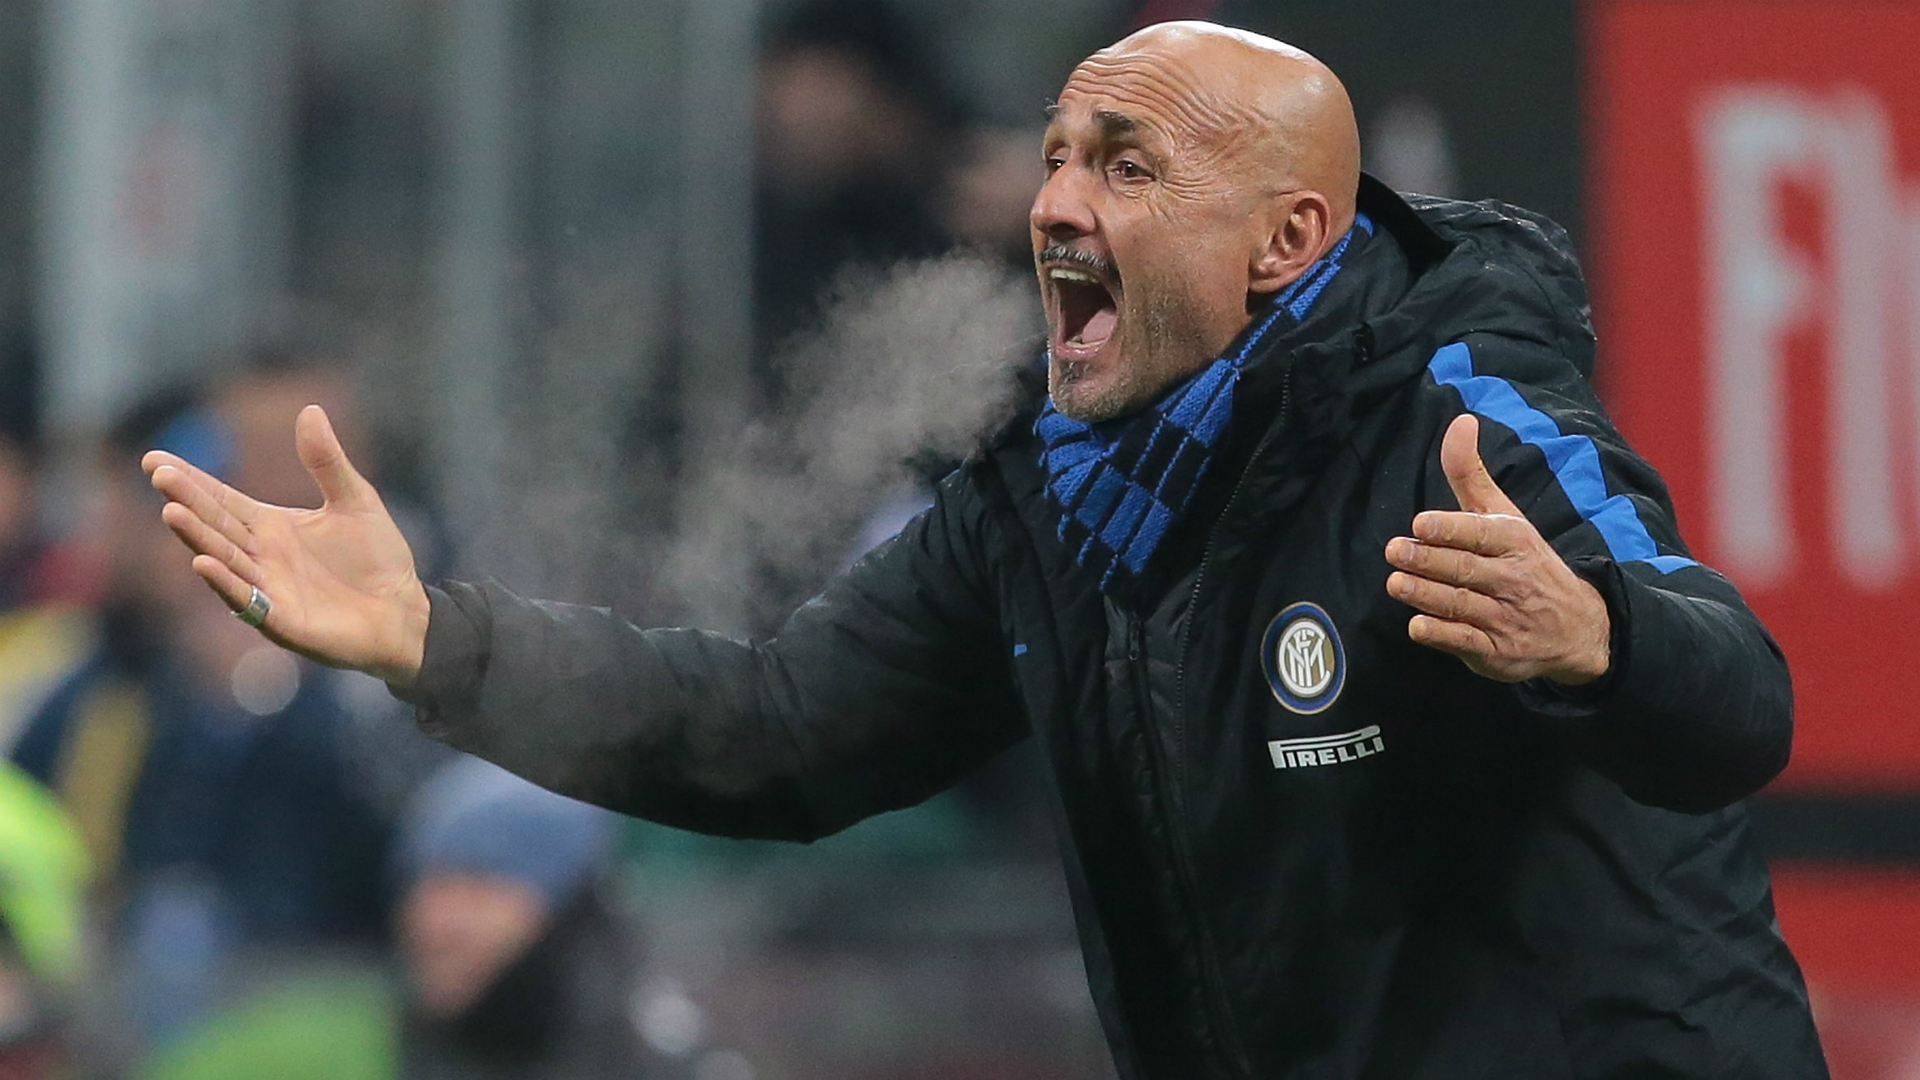 Luciano Spalletti can leave Zenith 75